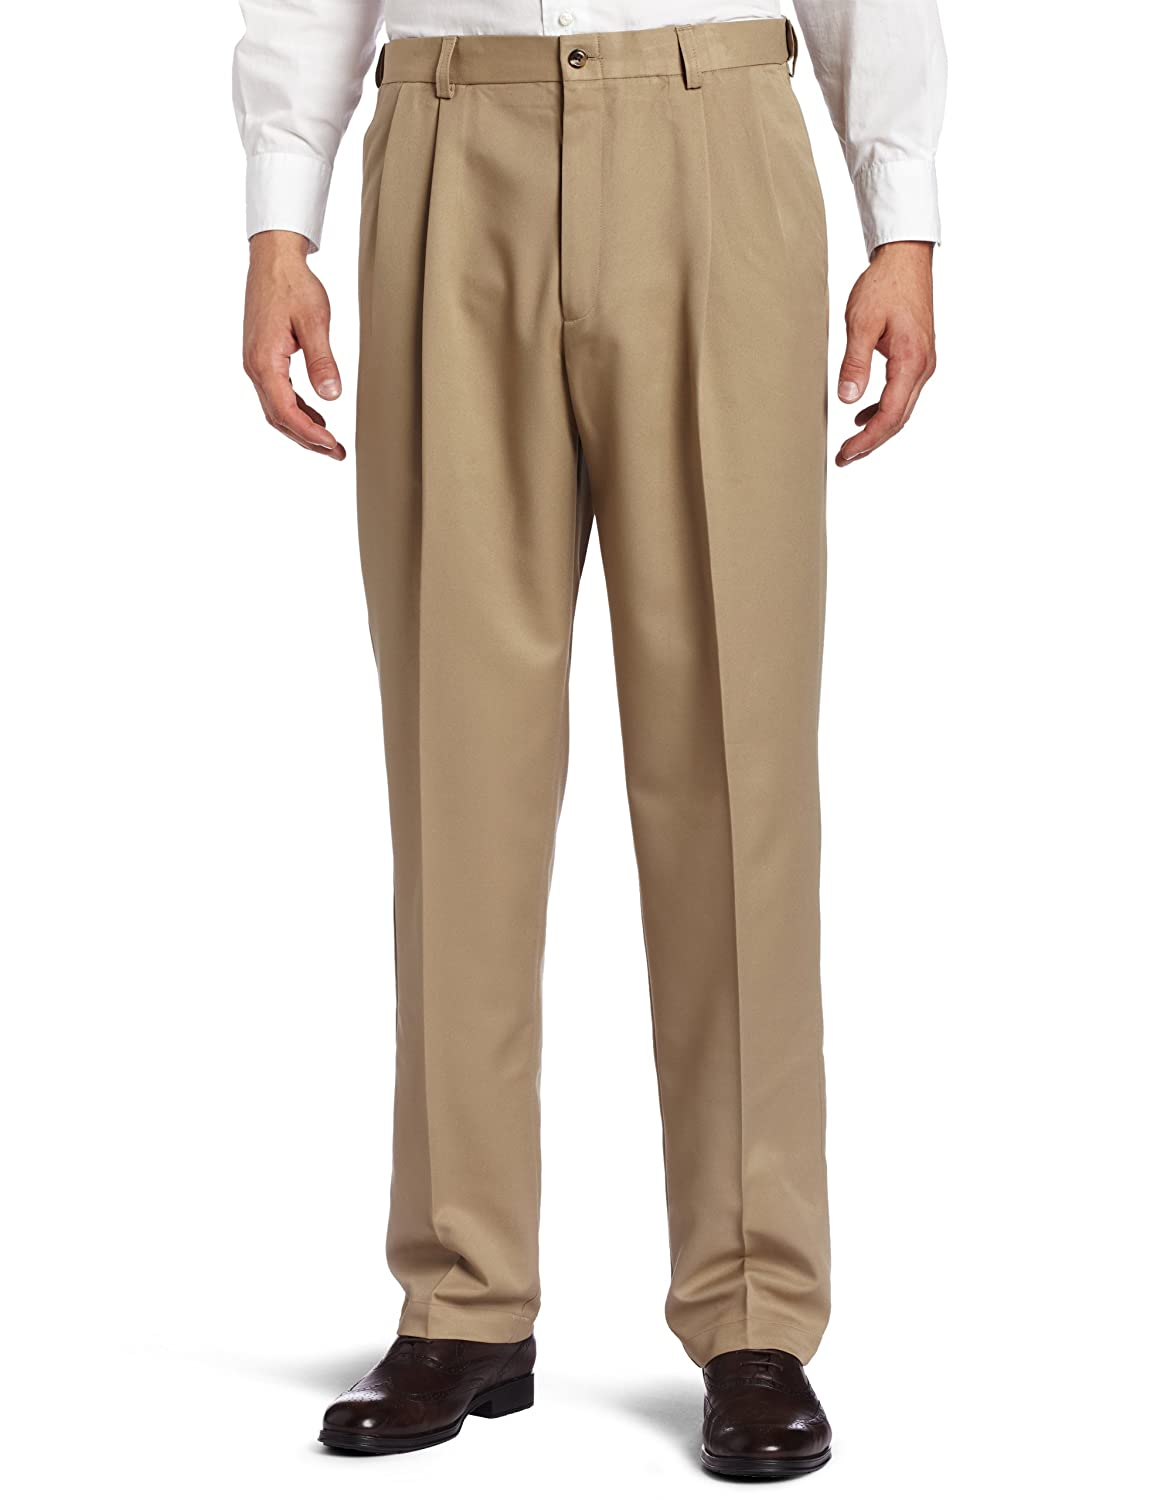 Haggar Men's Cool 18 Hidden Expandable Waist Pleat Front Pant Haggar Men's Bottoms 41714529486